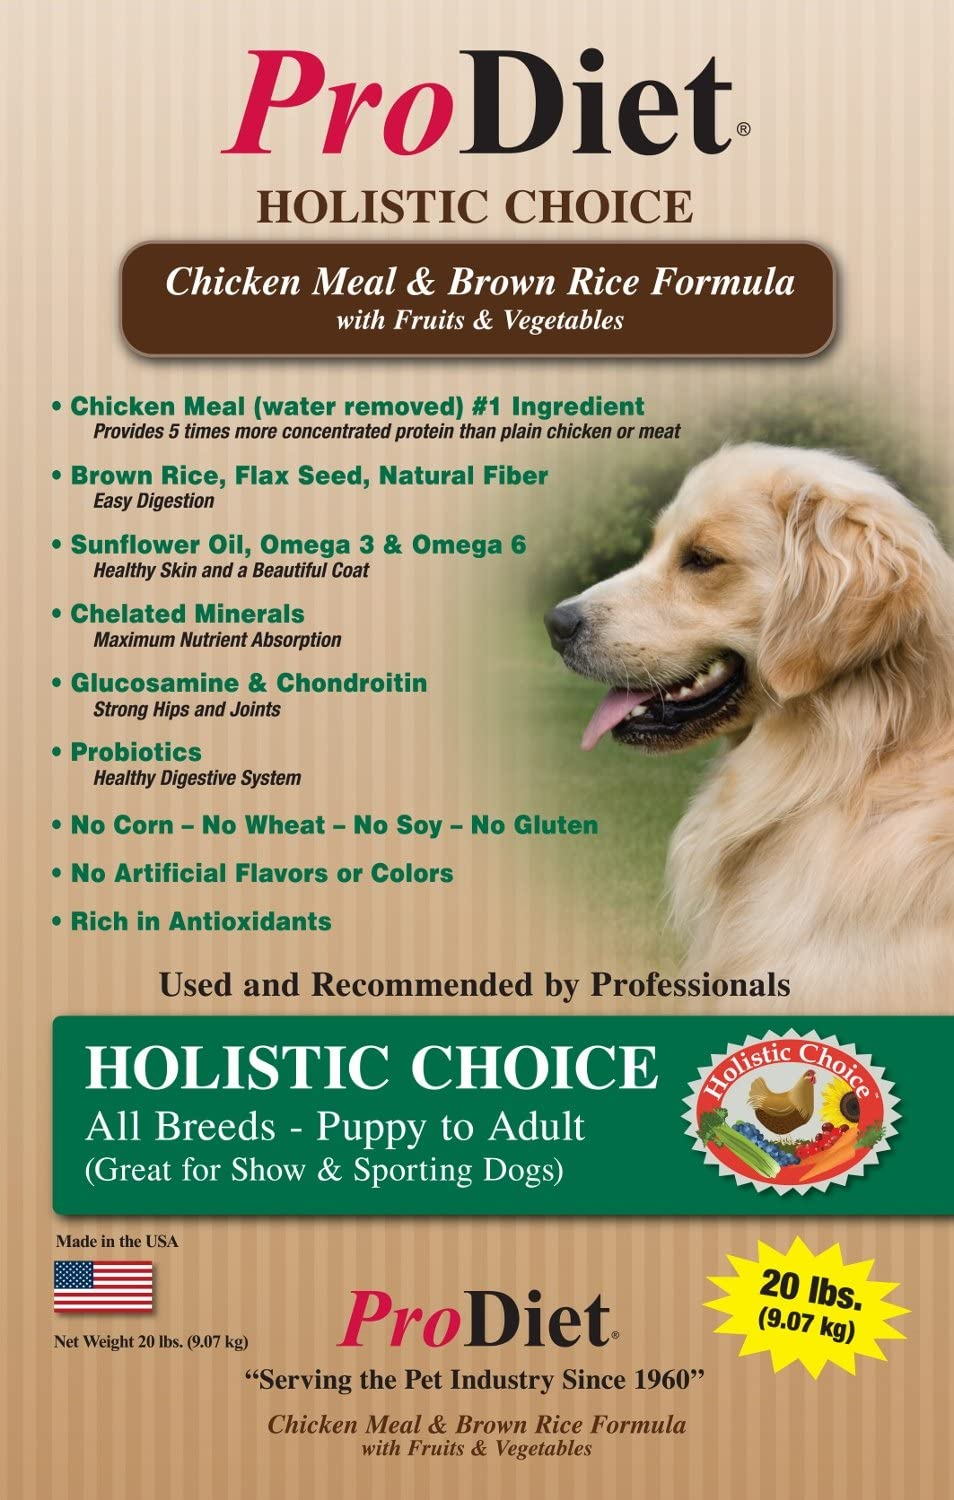 ProDiet Holistic Choice Dog Food Health Care Recipe - Your Alternative to Medication and Veterinary Bills, for All Breeds, Puppy to Adult